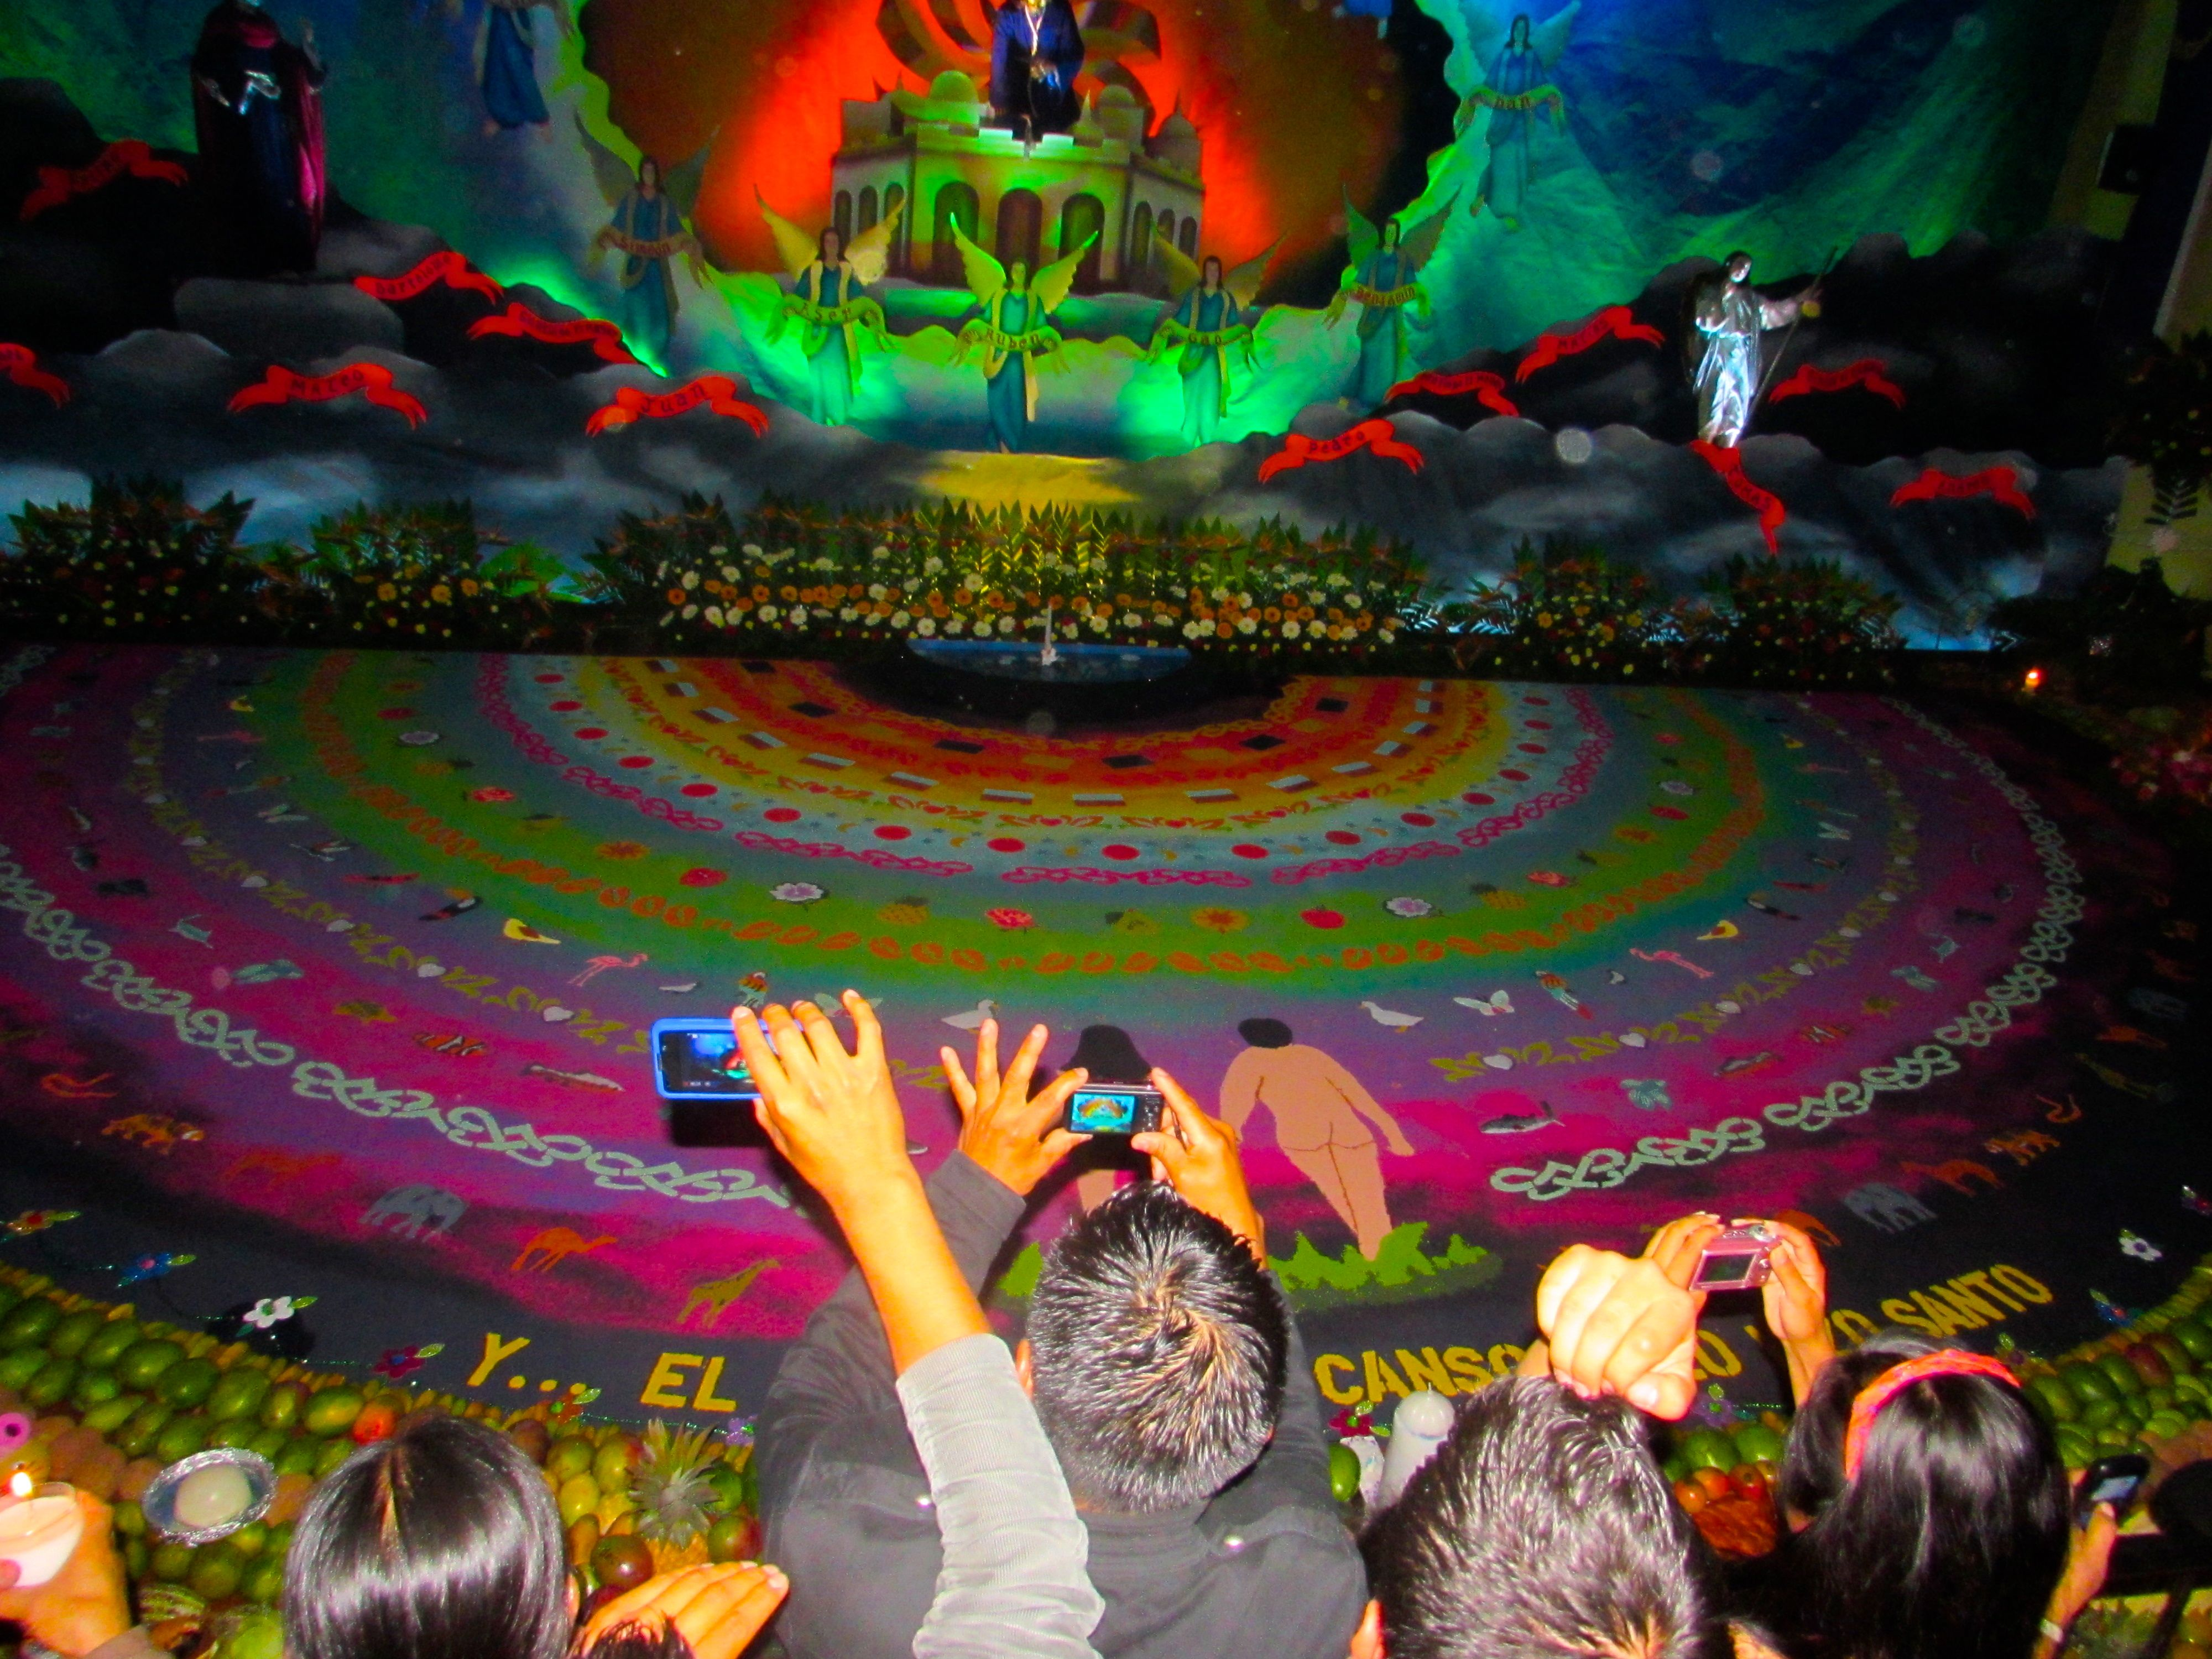 Caption: Onlookers press against the barrier to take photos of the display depicting the biblical creation of the world in the church of San Bartolome Bacerra, Friday., Credit: Benjamin Reeves